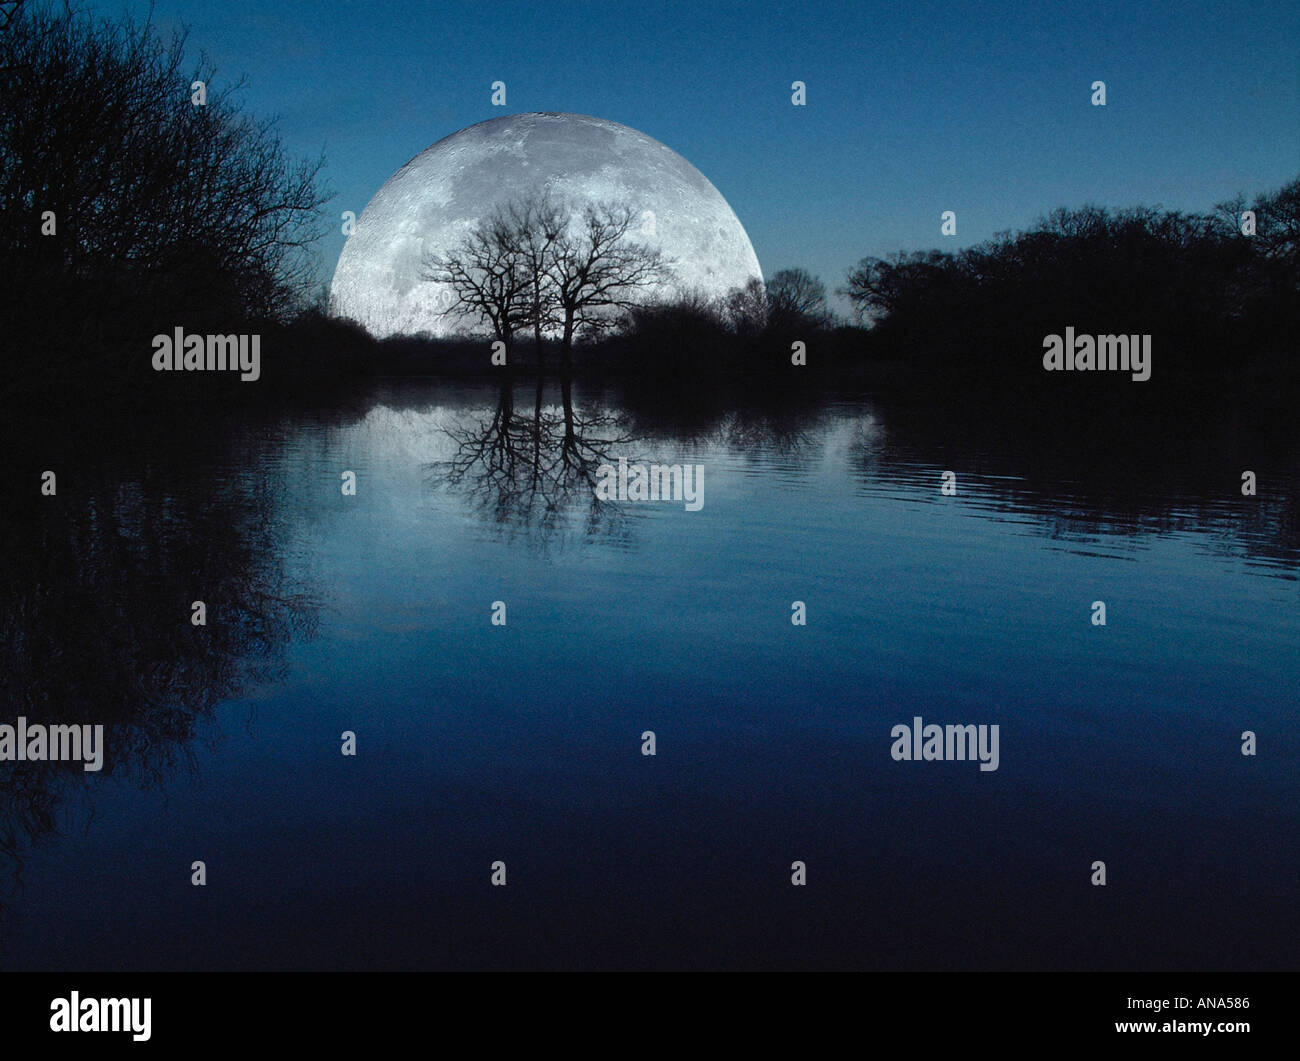 Moonrise over lake with silhouetted trees - Stock Image